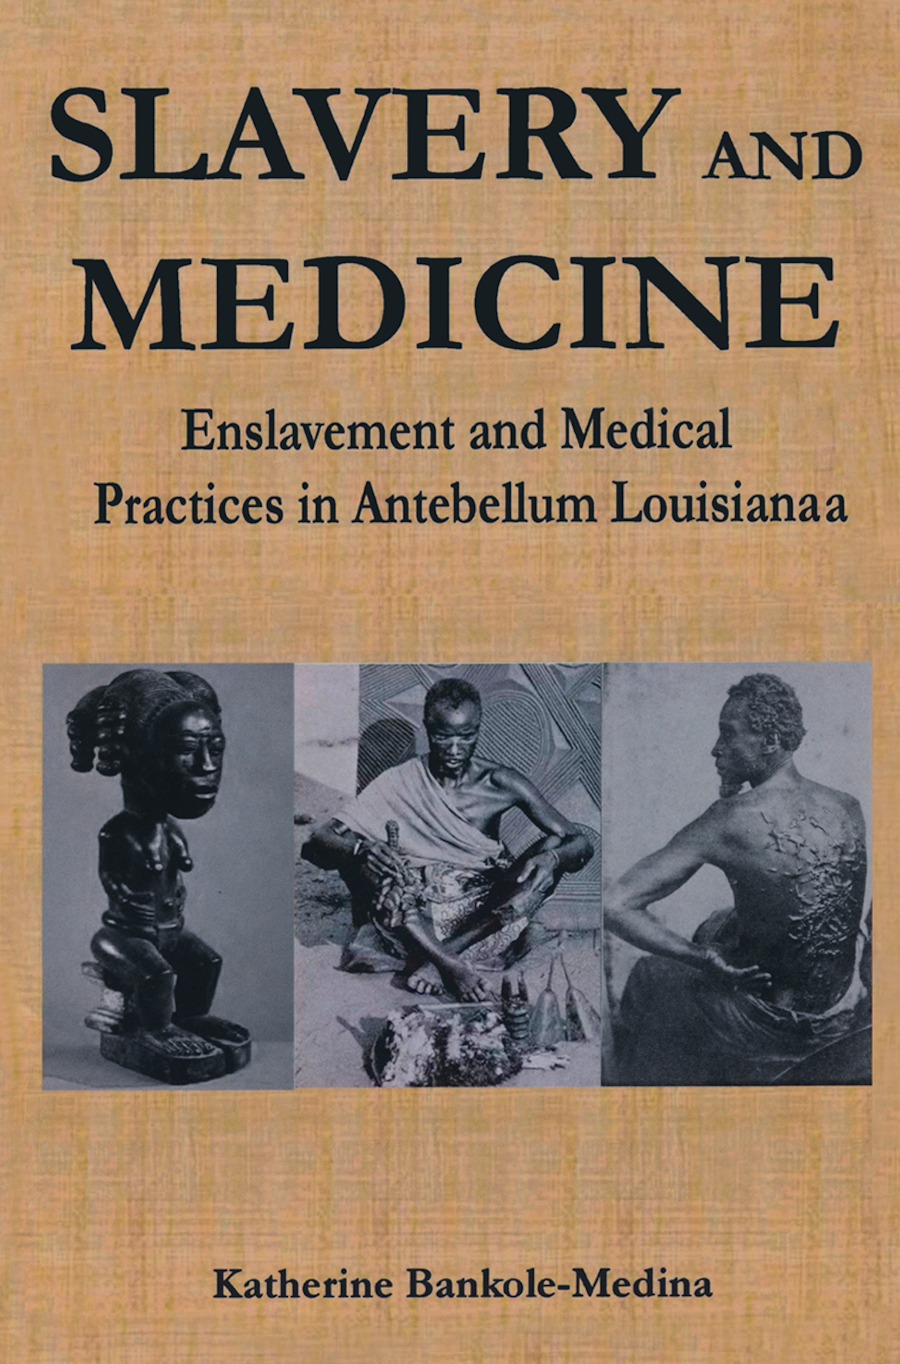 Slavery and Medicine: Enslavement and Medical Practices in Antebellum Louisiana book cover